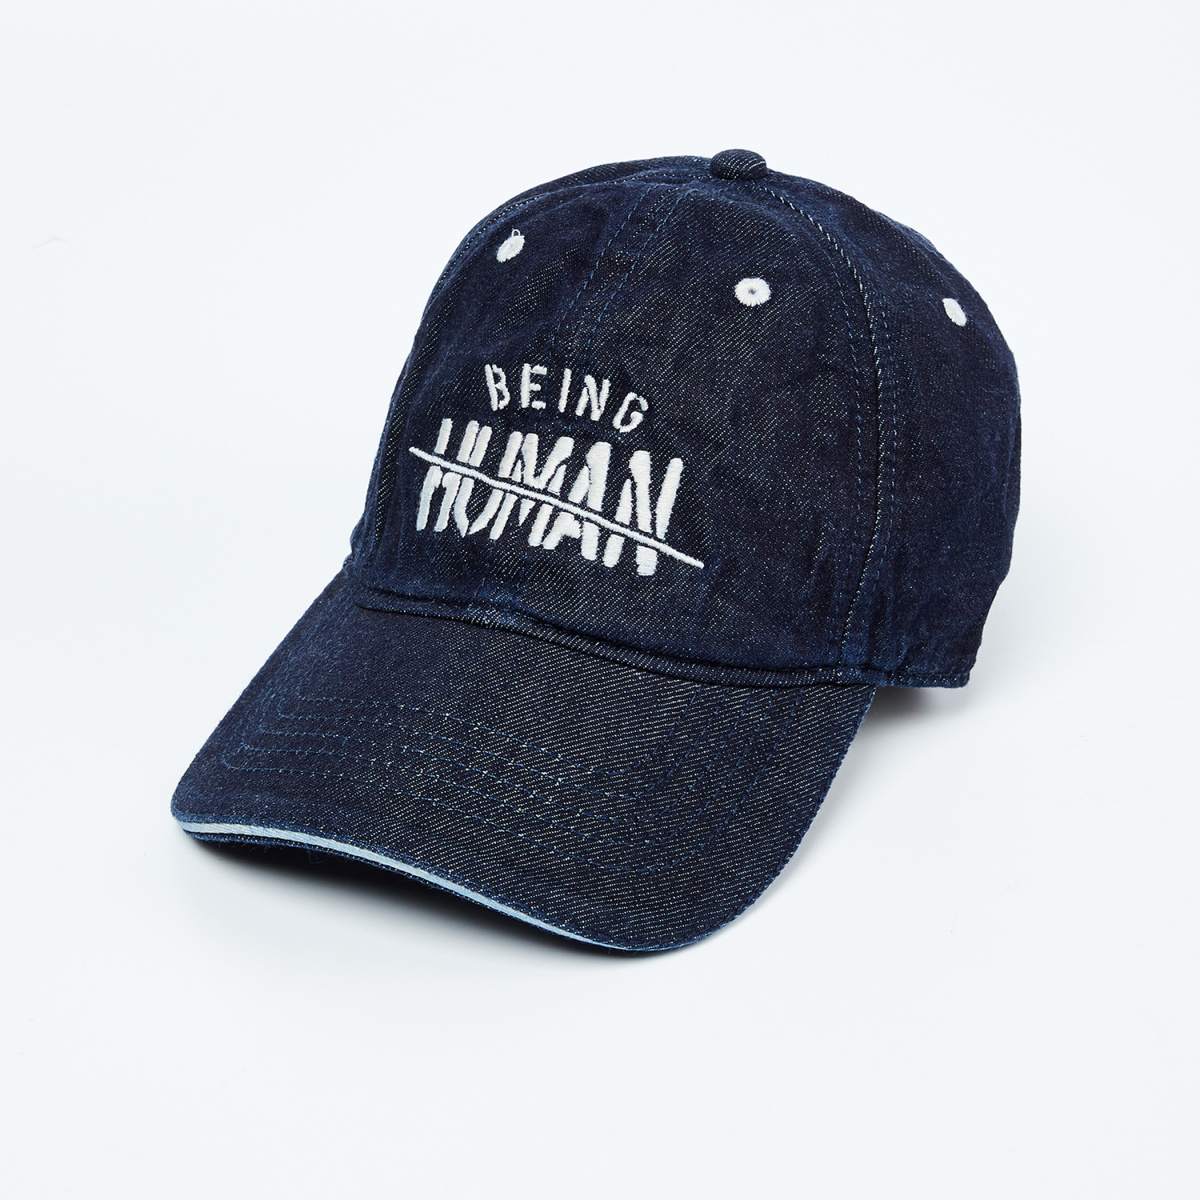 BEING HUMAN Embroidered Cap with Adjustable Strap